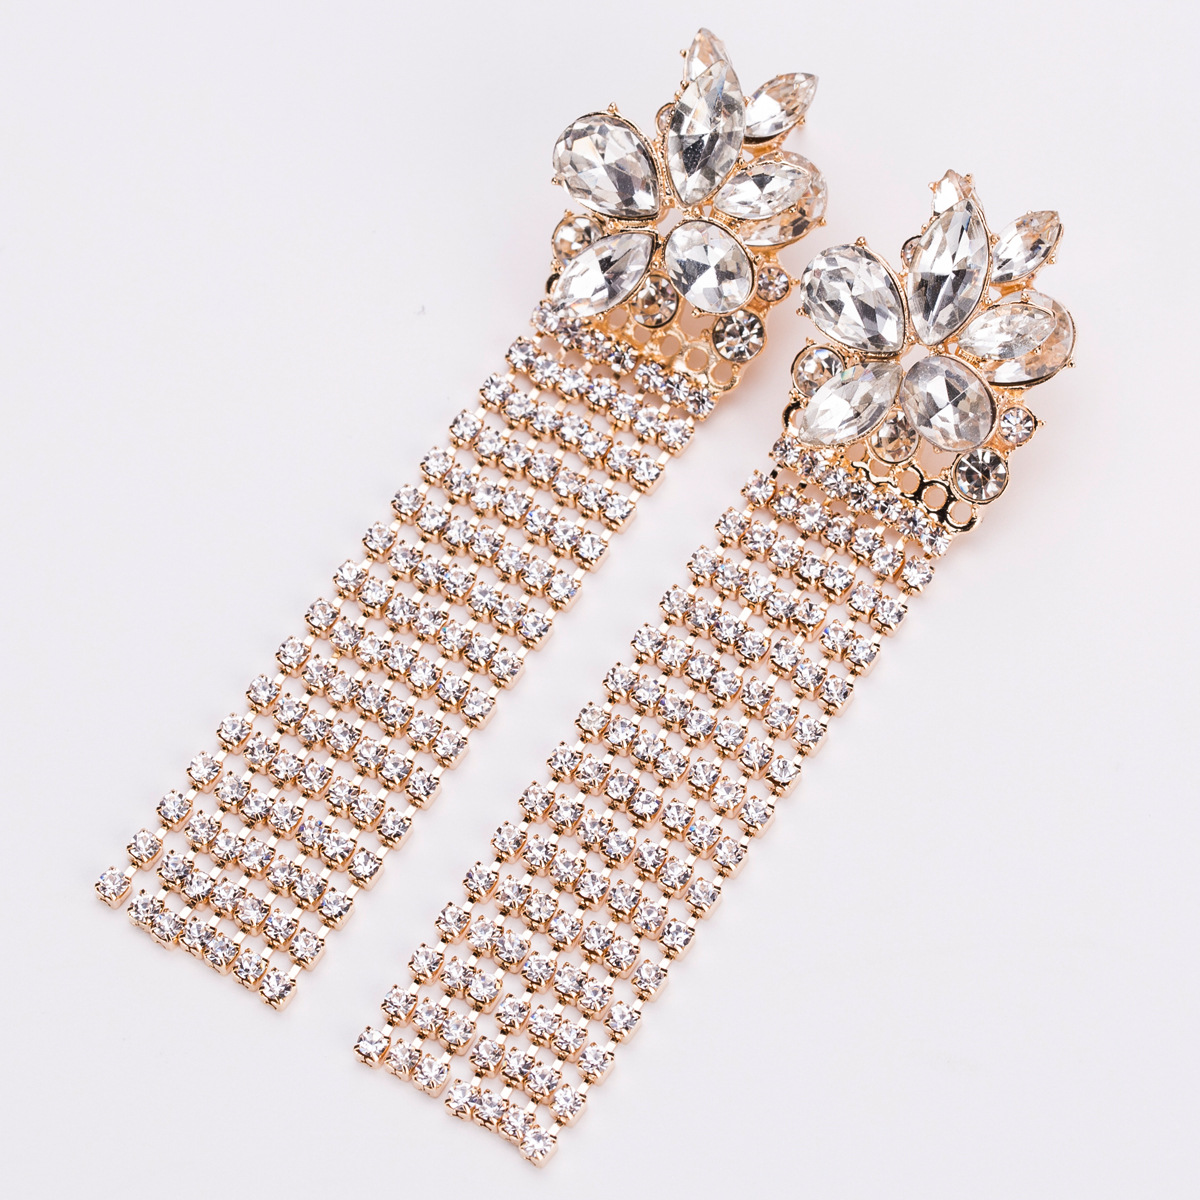 Alloy Fashion Flowers earring(KC Gold) NHJE1324-KC-Gold